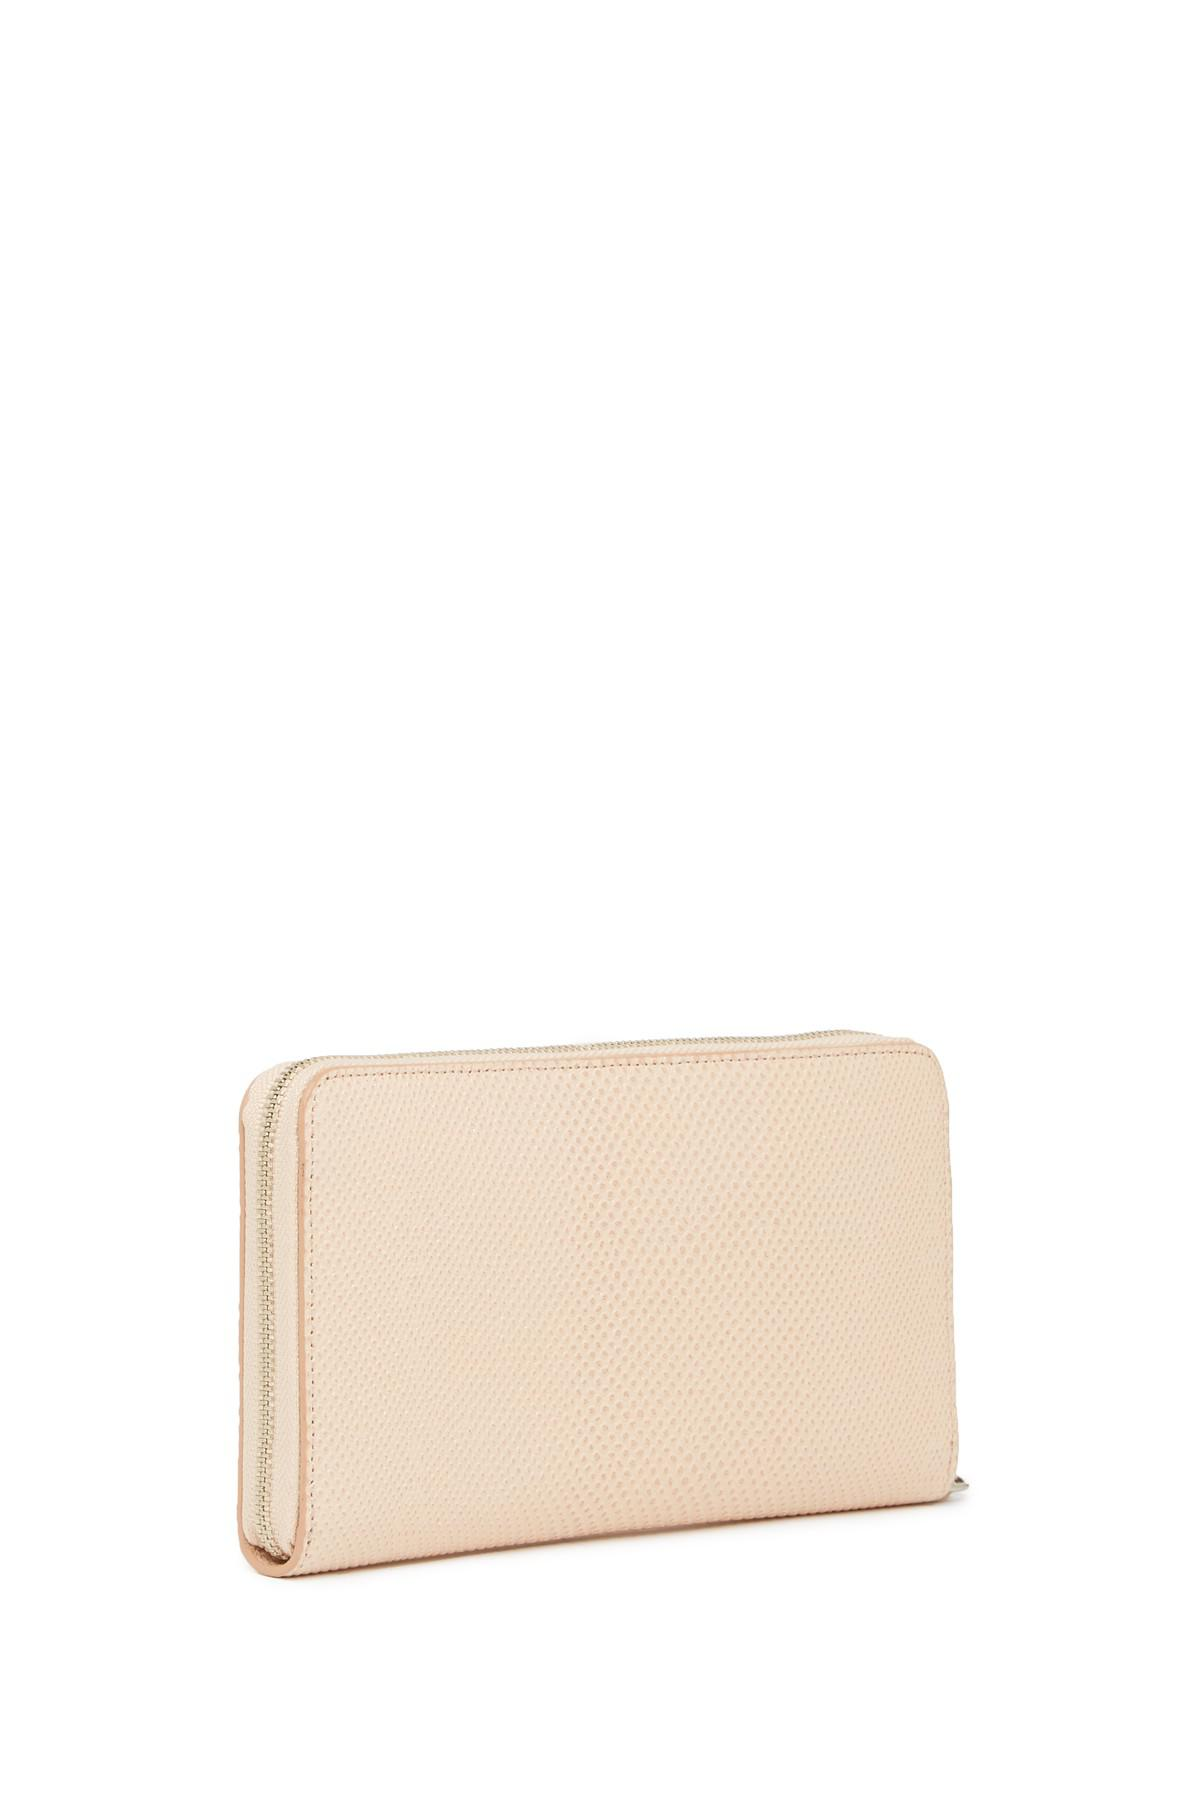 d228414e7aae Lyst - Halogen Leather Zip Around Wallet in Pink